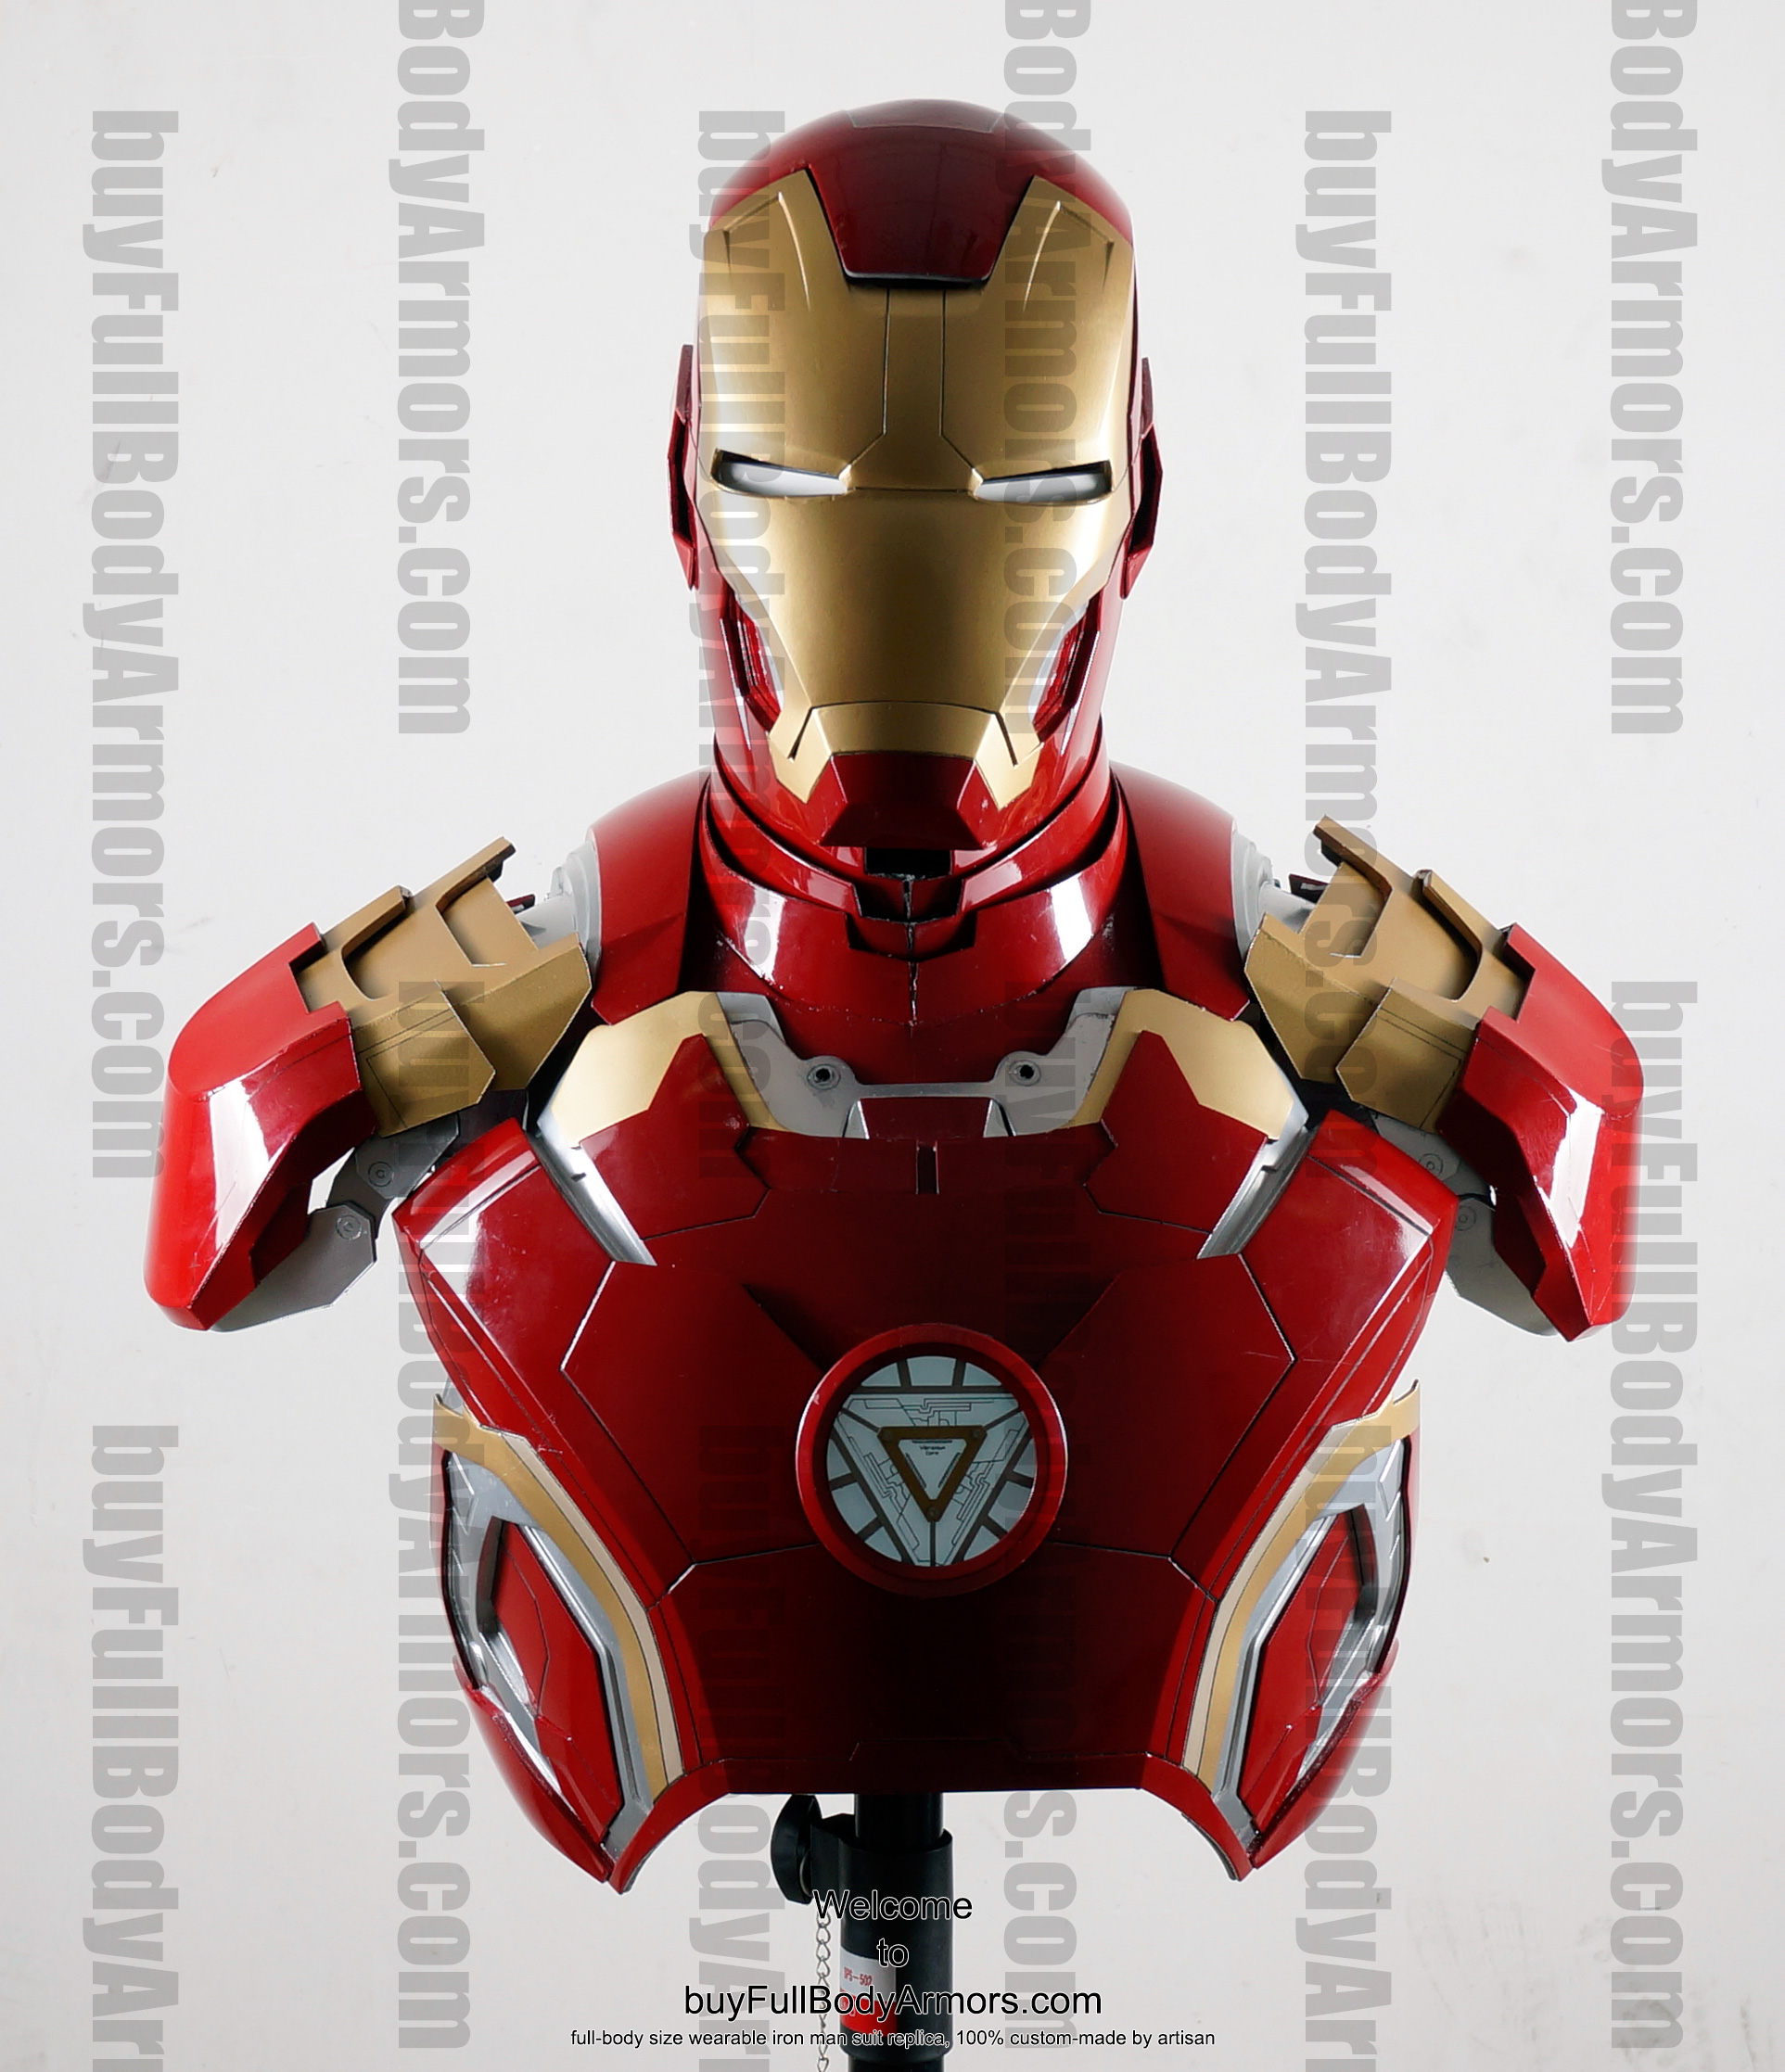 the wearable Iron Man Mark 43 (XLIII) suit costume bust front